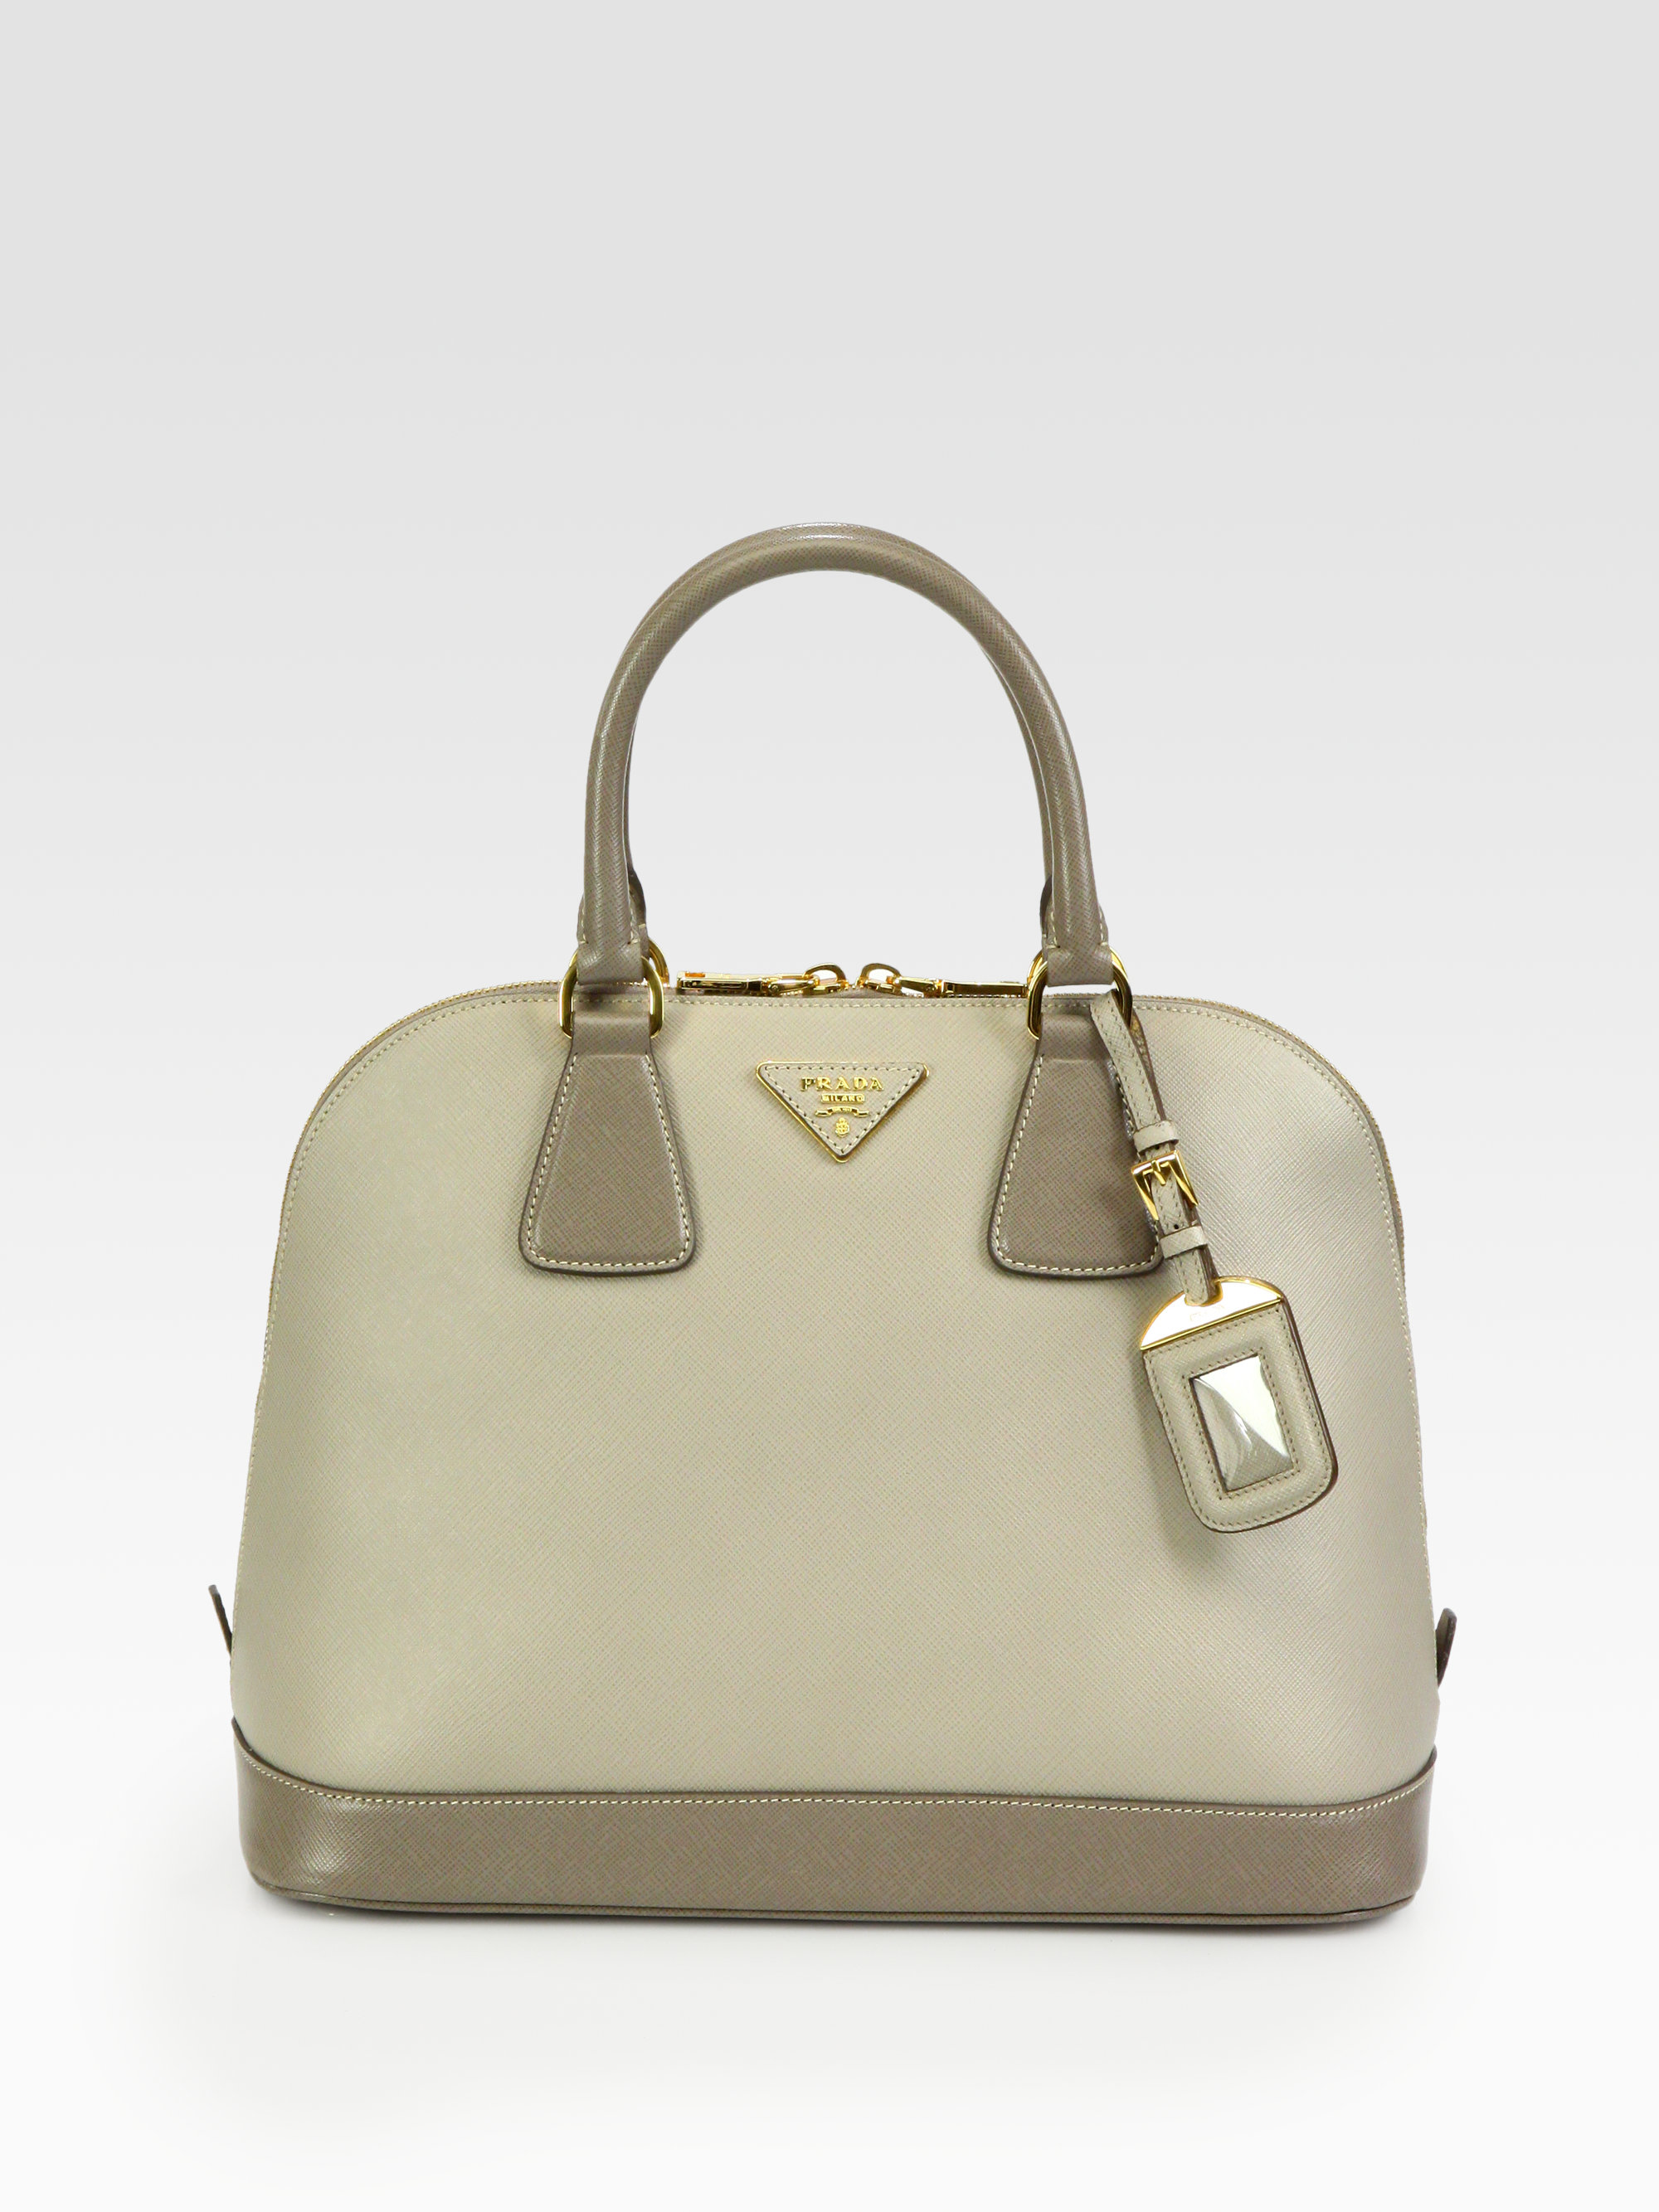 Prada Saffiano Lux Bicolor Top Handle Bag in Gray (grey) | Lyst